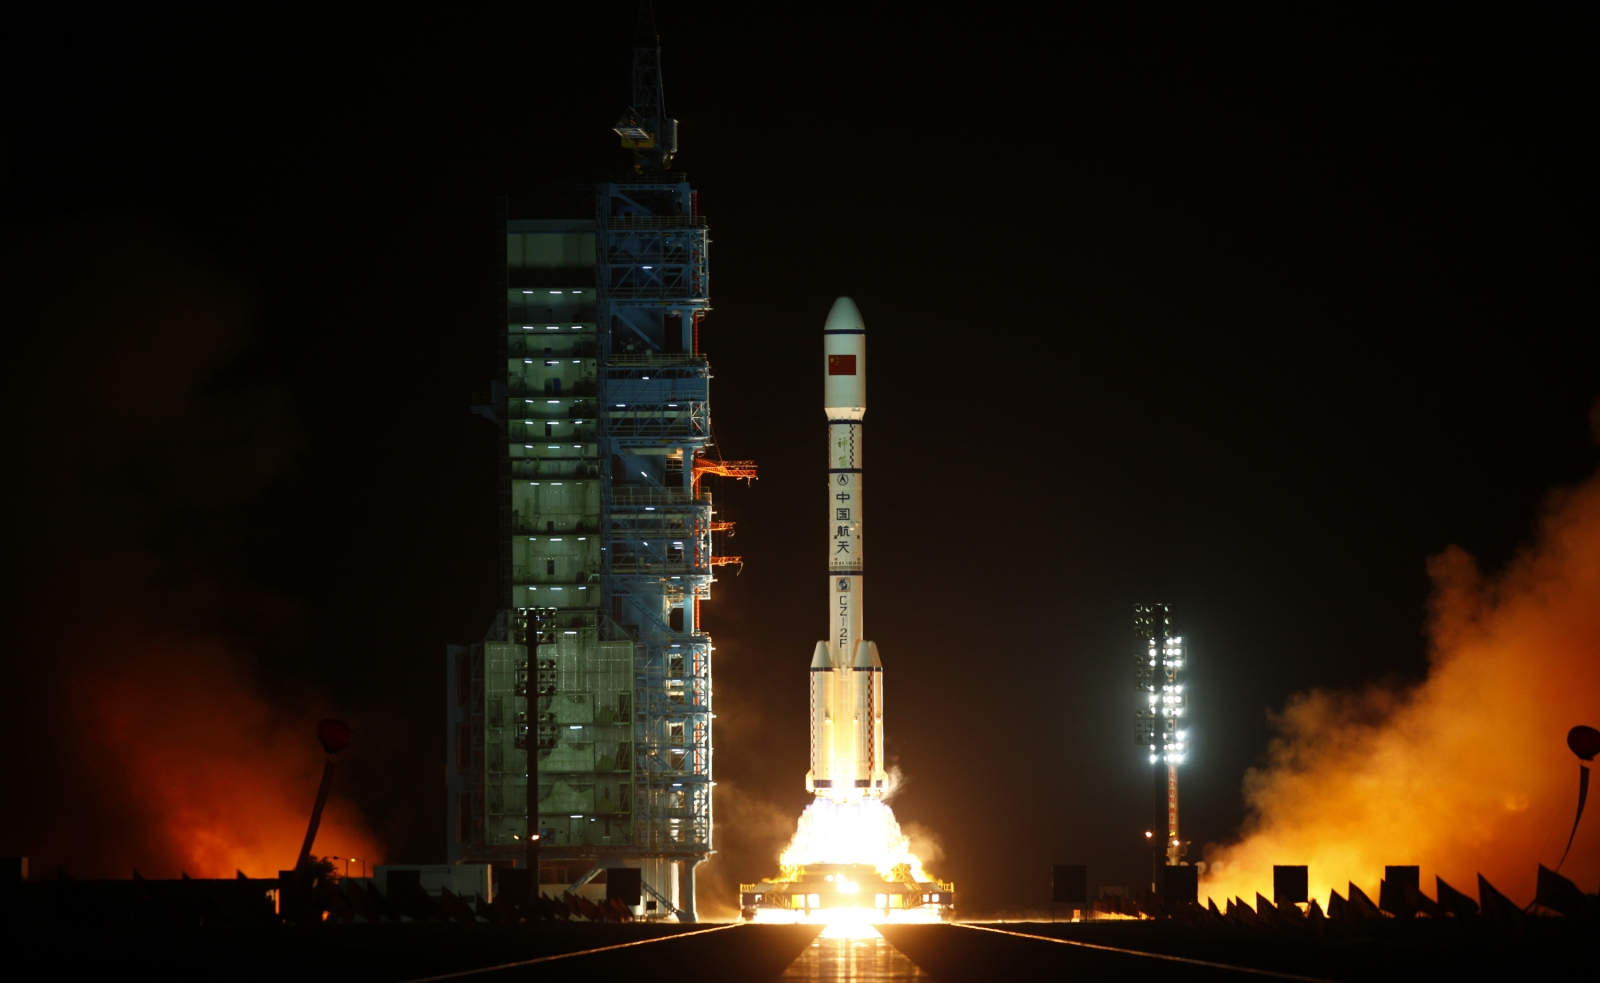 tiangong1 is chinas 1st space station really crashing